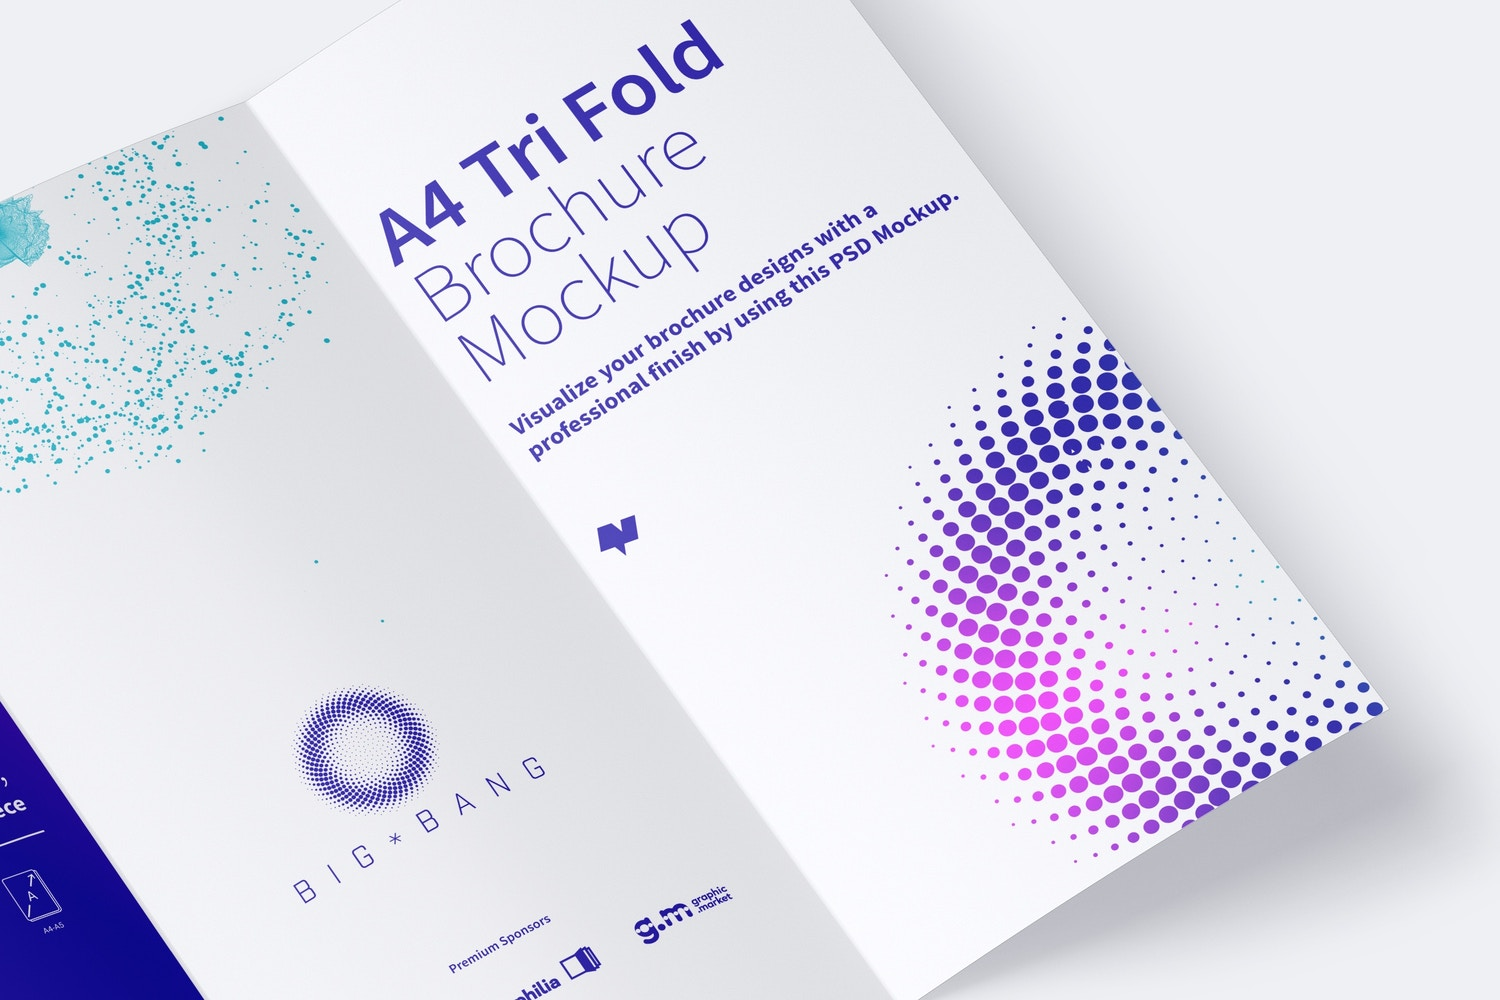 A4 Trifold Brochure Mockup 01 (4) by Original Mockups on Original Mockups